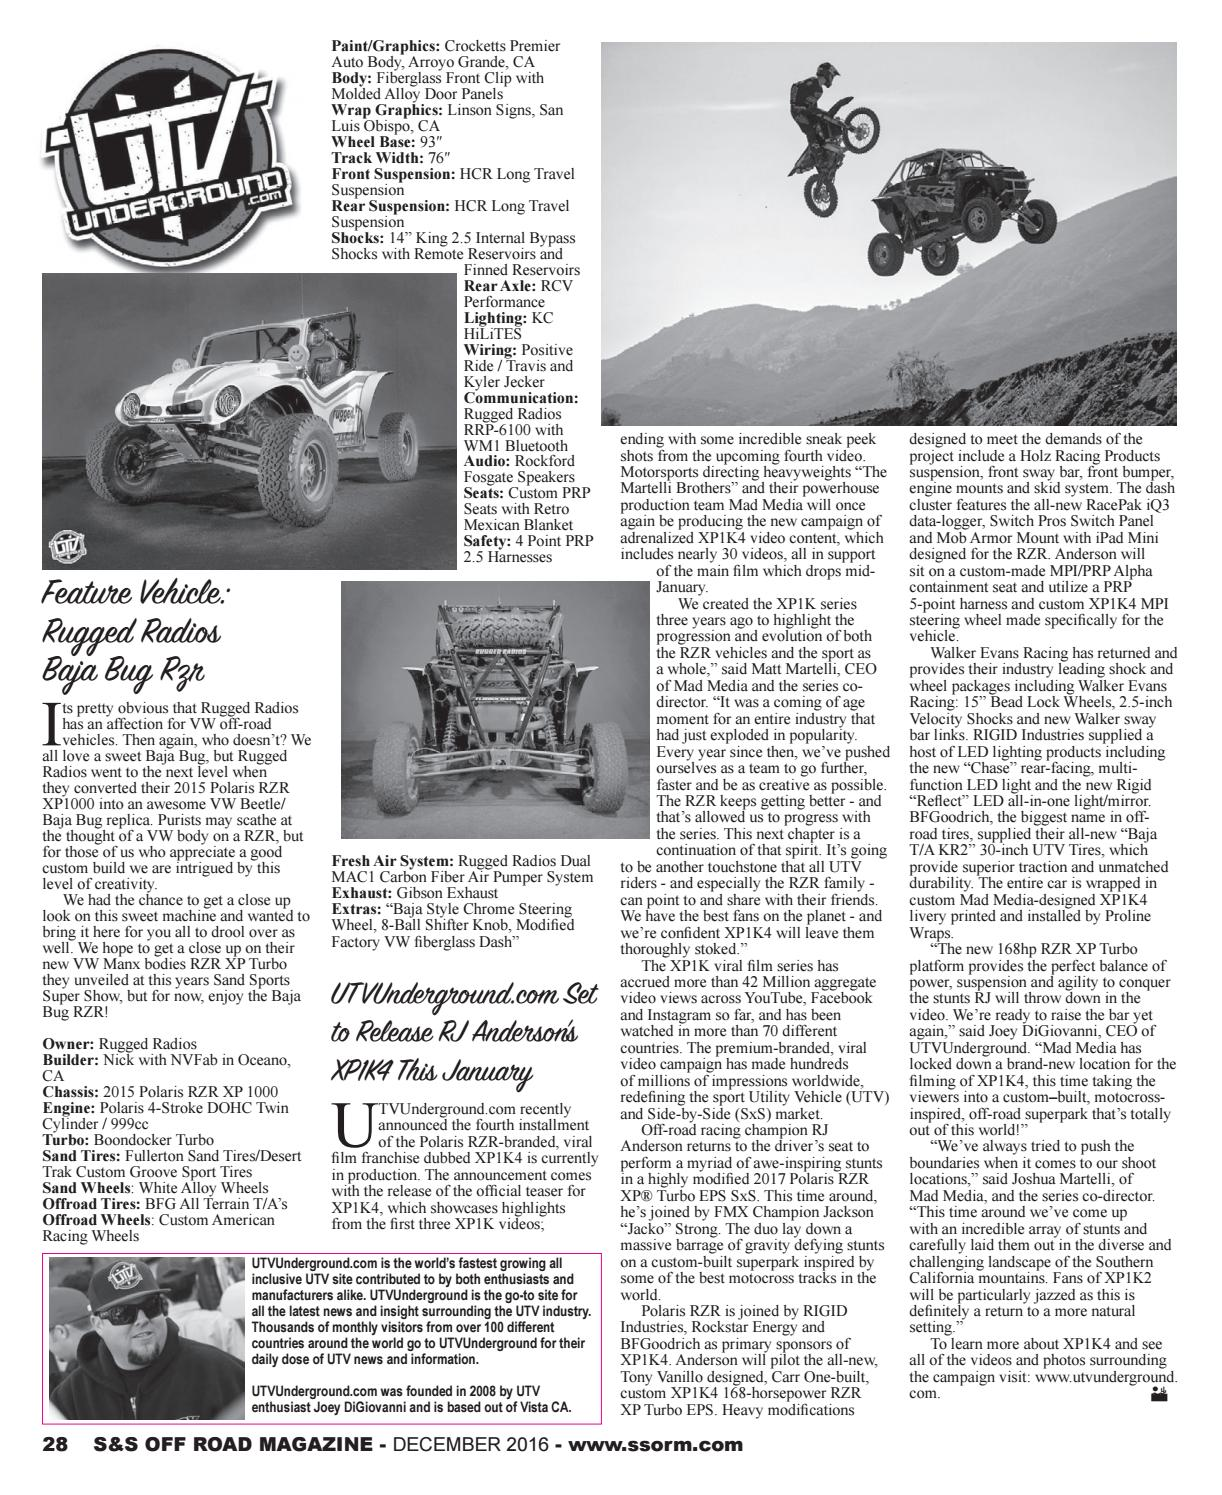 S&S Off Road Magazine December 2016 by S&S Off Road Magazine - issuu